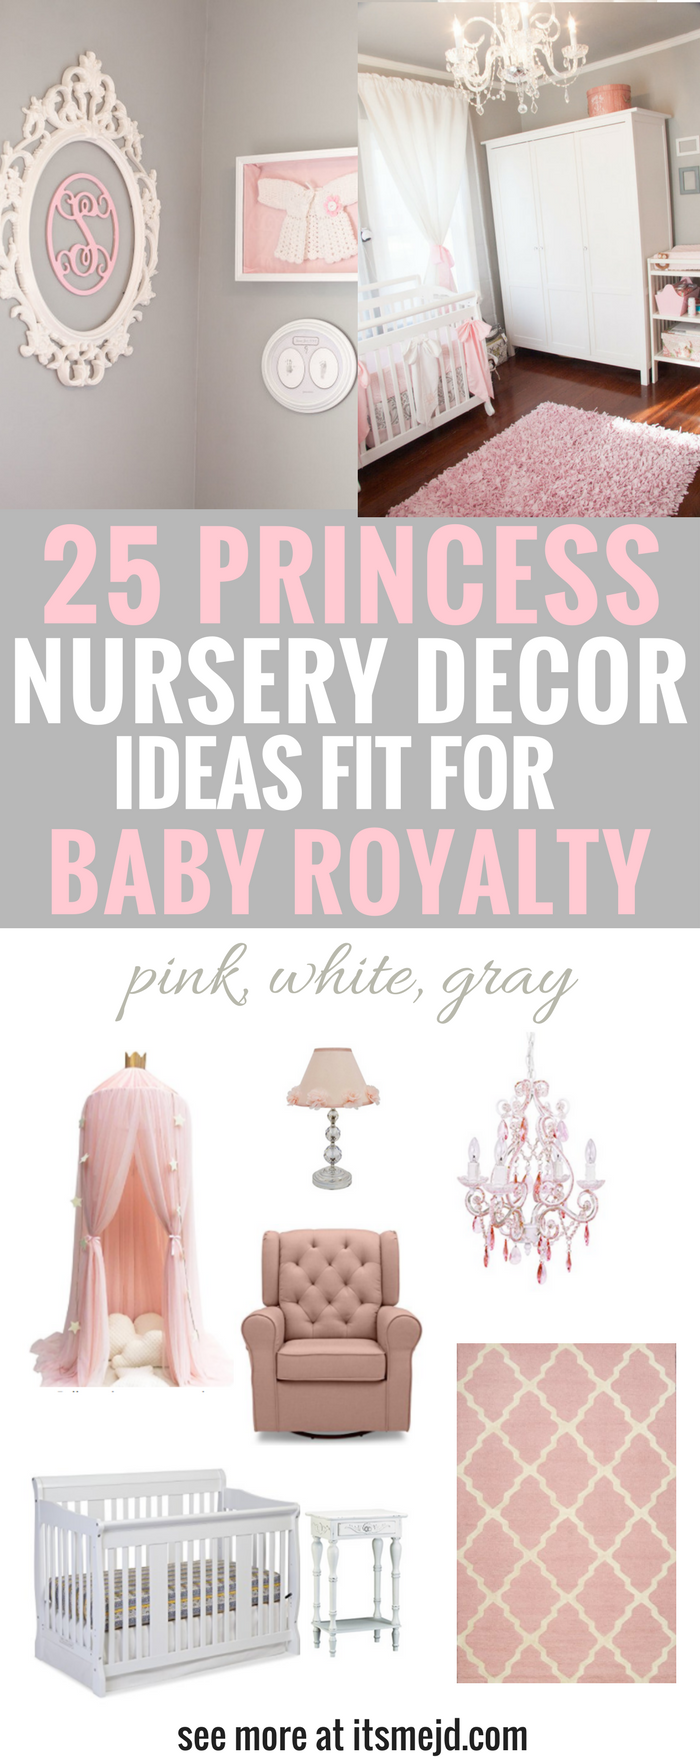 Princess Nursery Decor Ideas Fit for Baby Royalty, Pink, White, Gray, Girl, Elegant, Crown